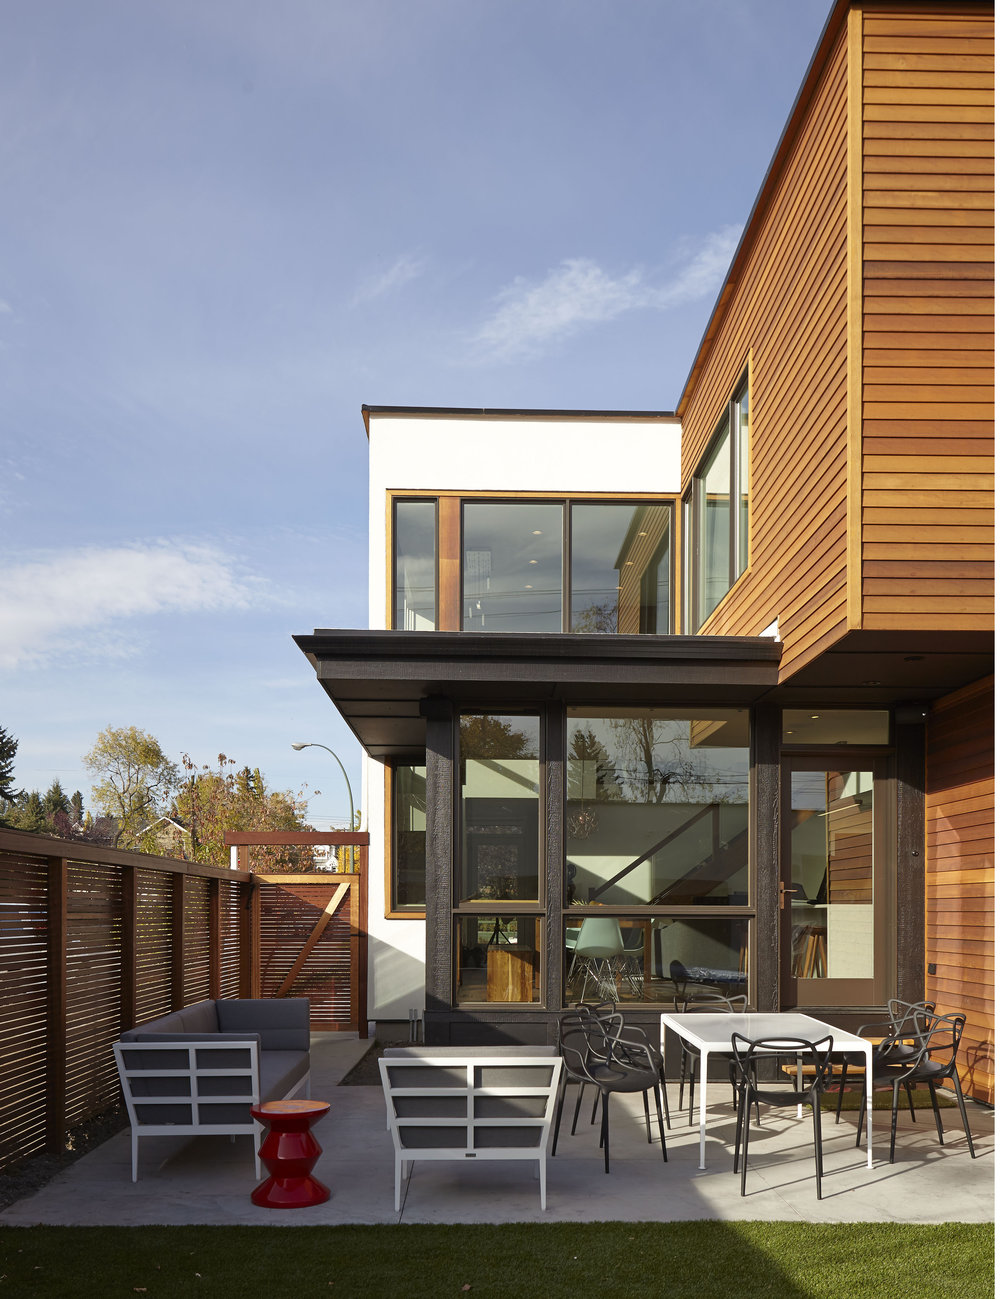 turkel_modern_design_prefab_home_bankview_house_calgary_outdoor.jpg